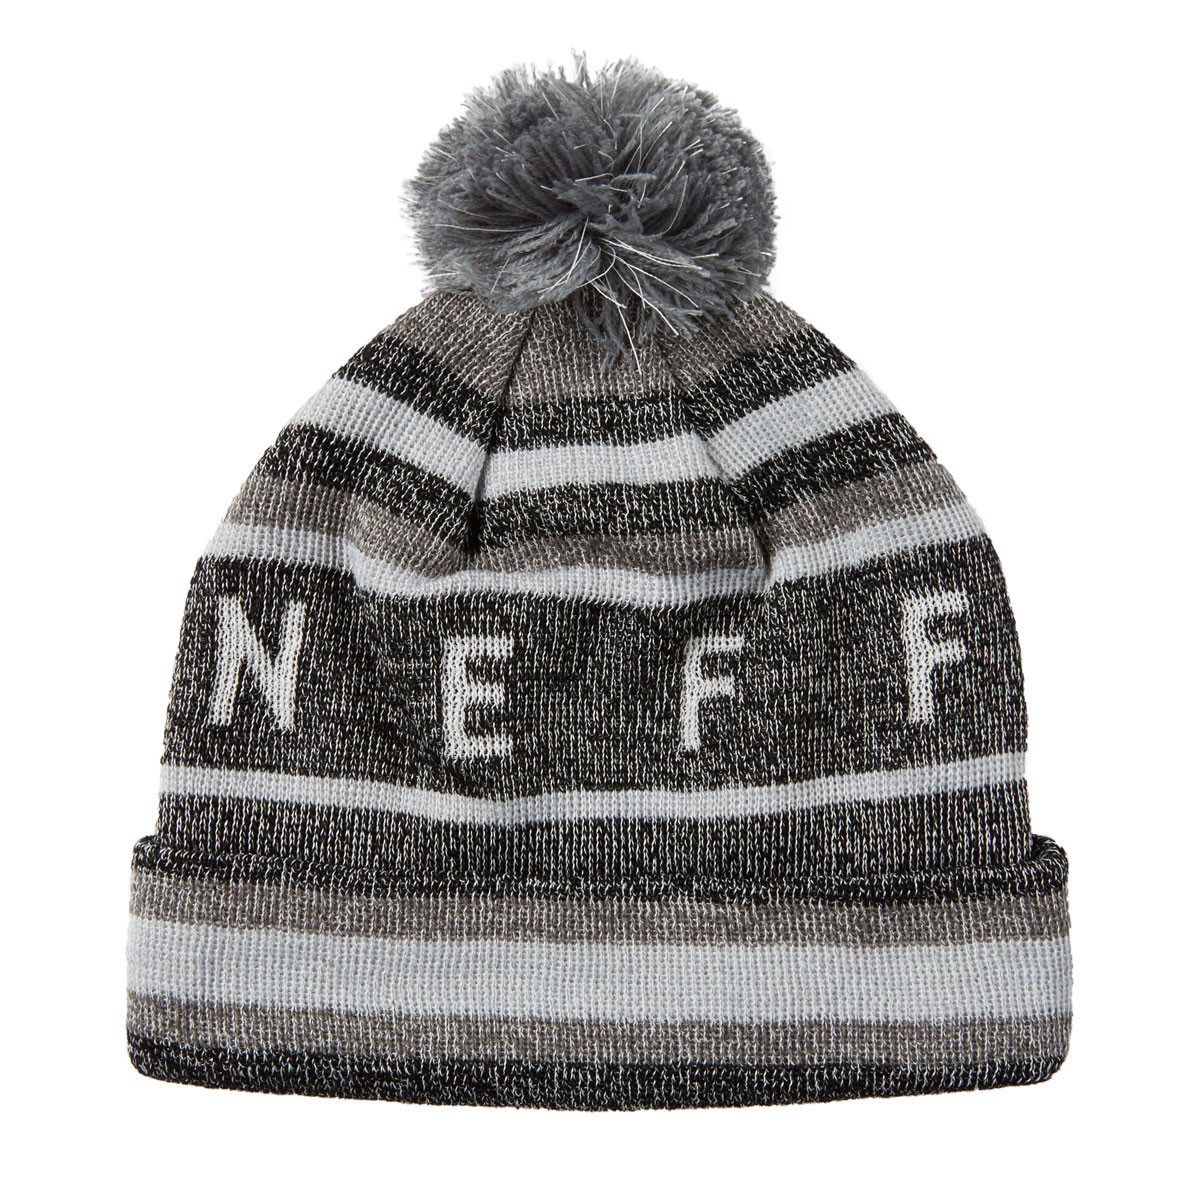 6b841ff7007 Neff Nightly Tailgate Beanie - Black Grey Glow